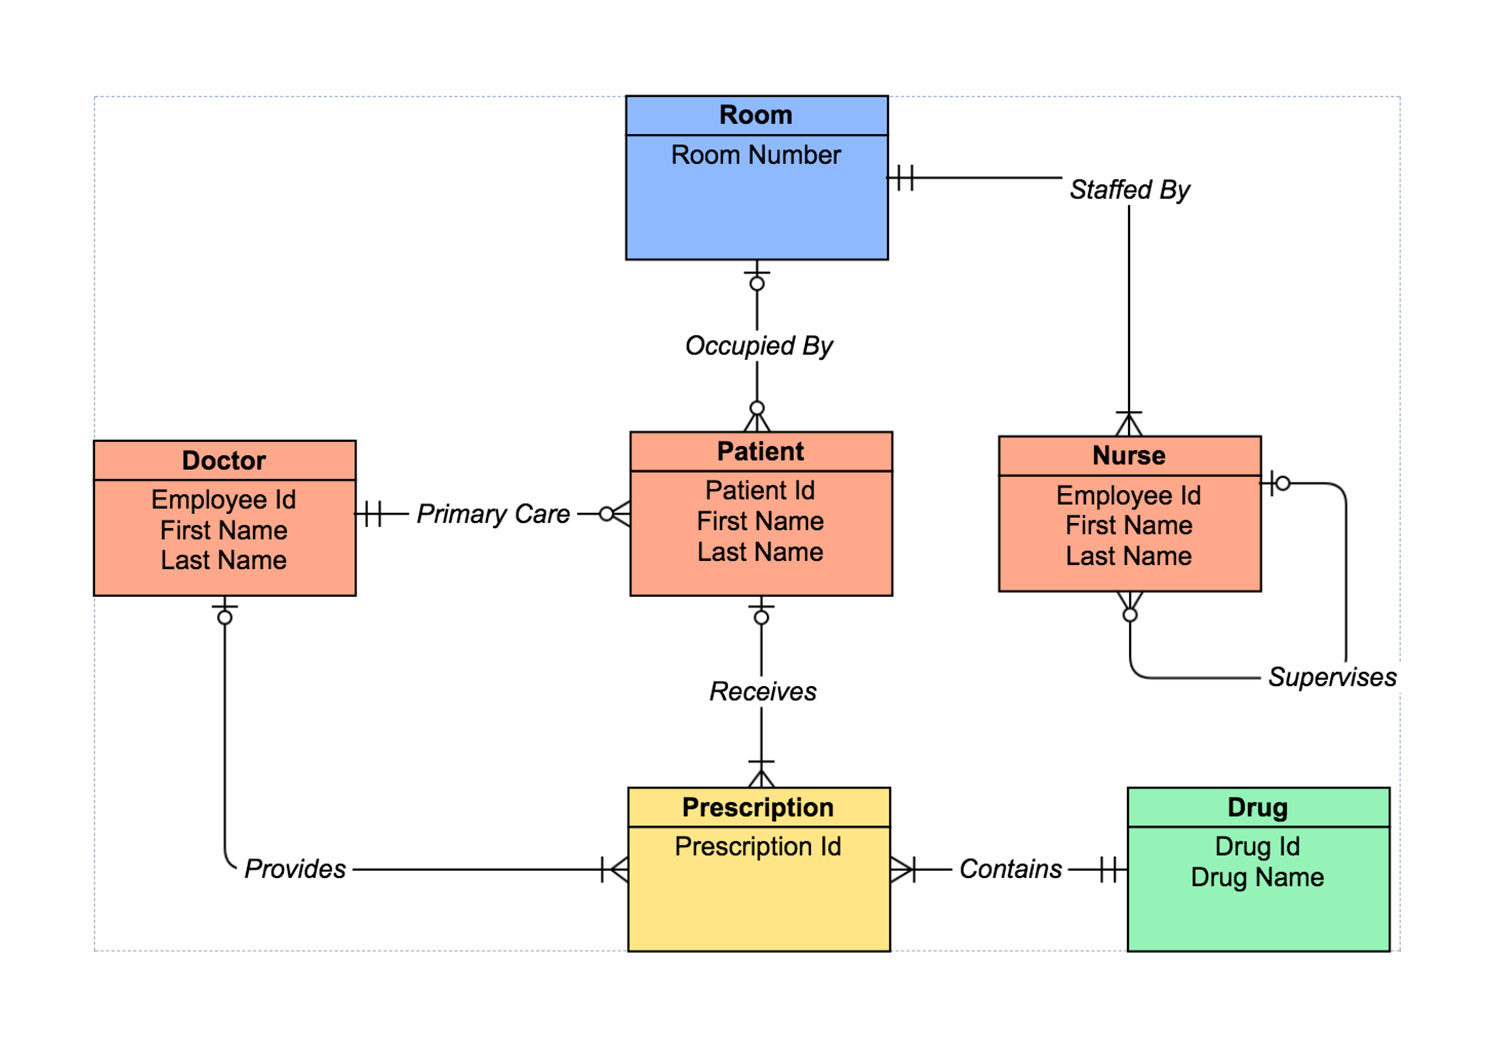 Er Diagram Tool | How To Make Er Diagrams Online | Gliffy with regard to Examples Of Er Diagram In Database